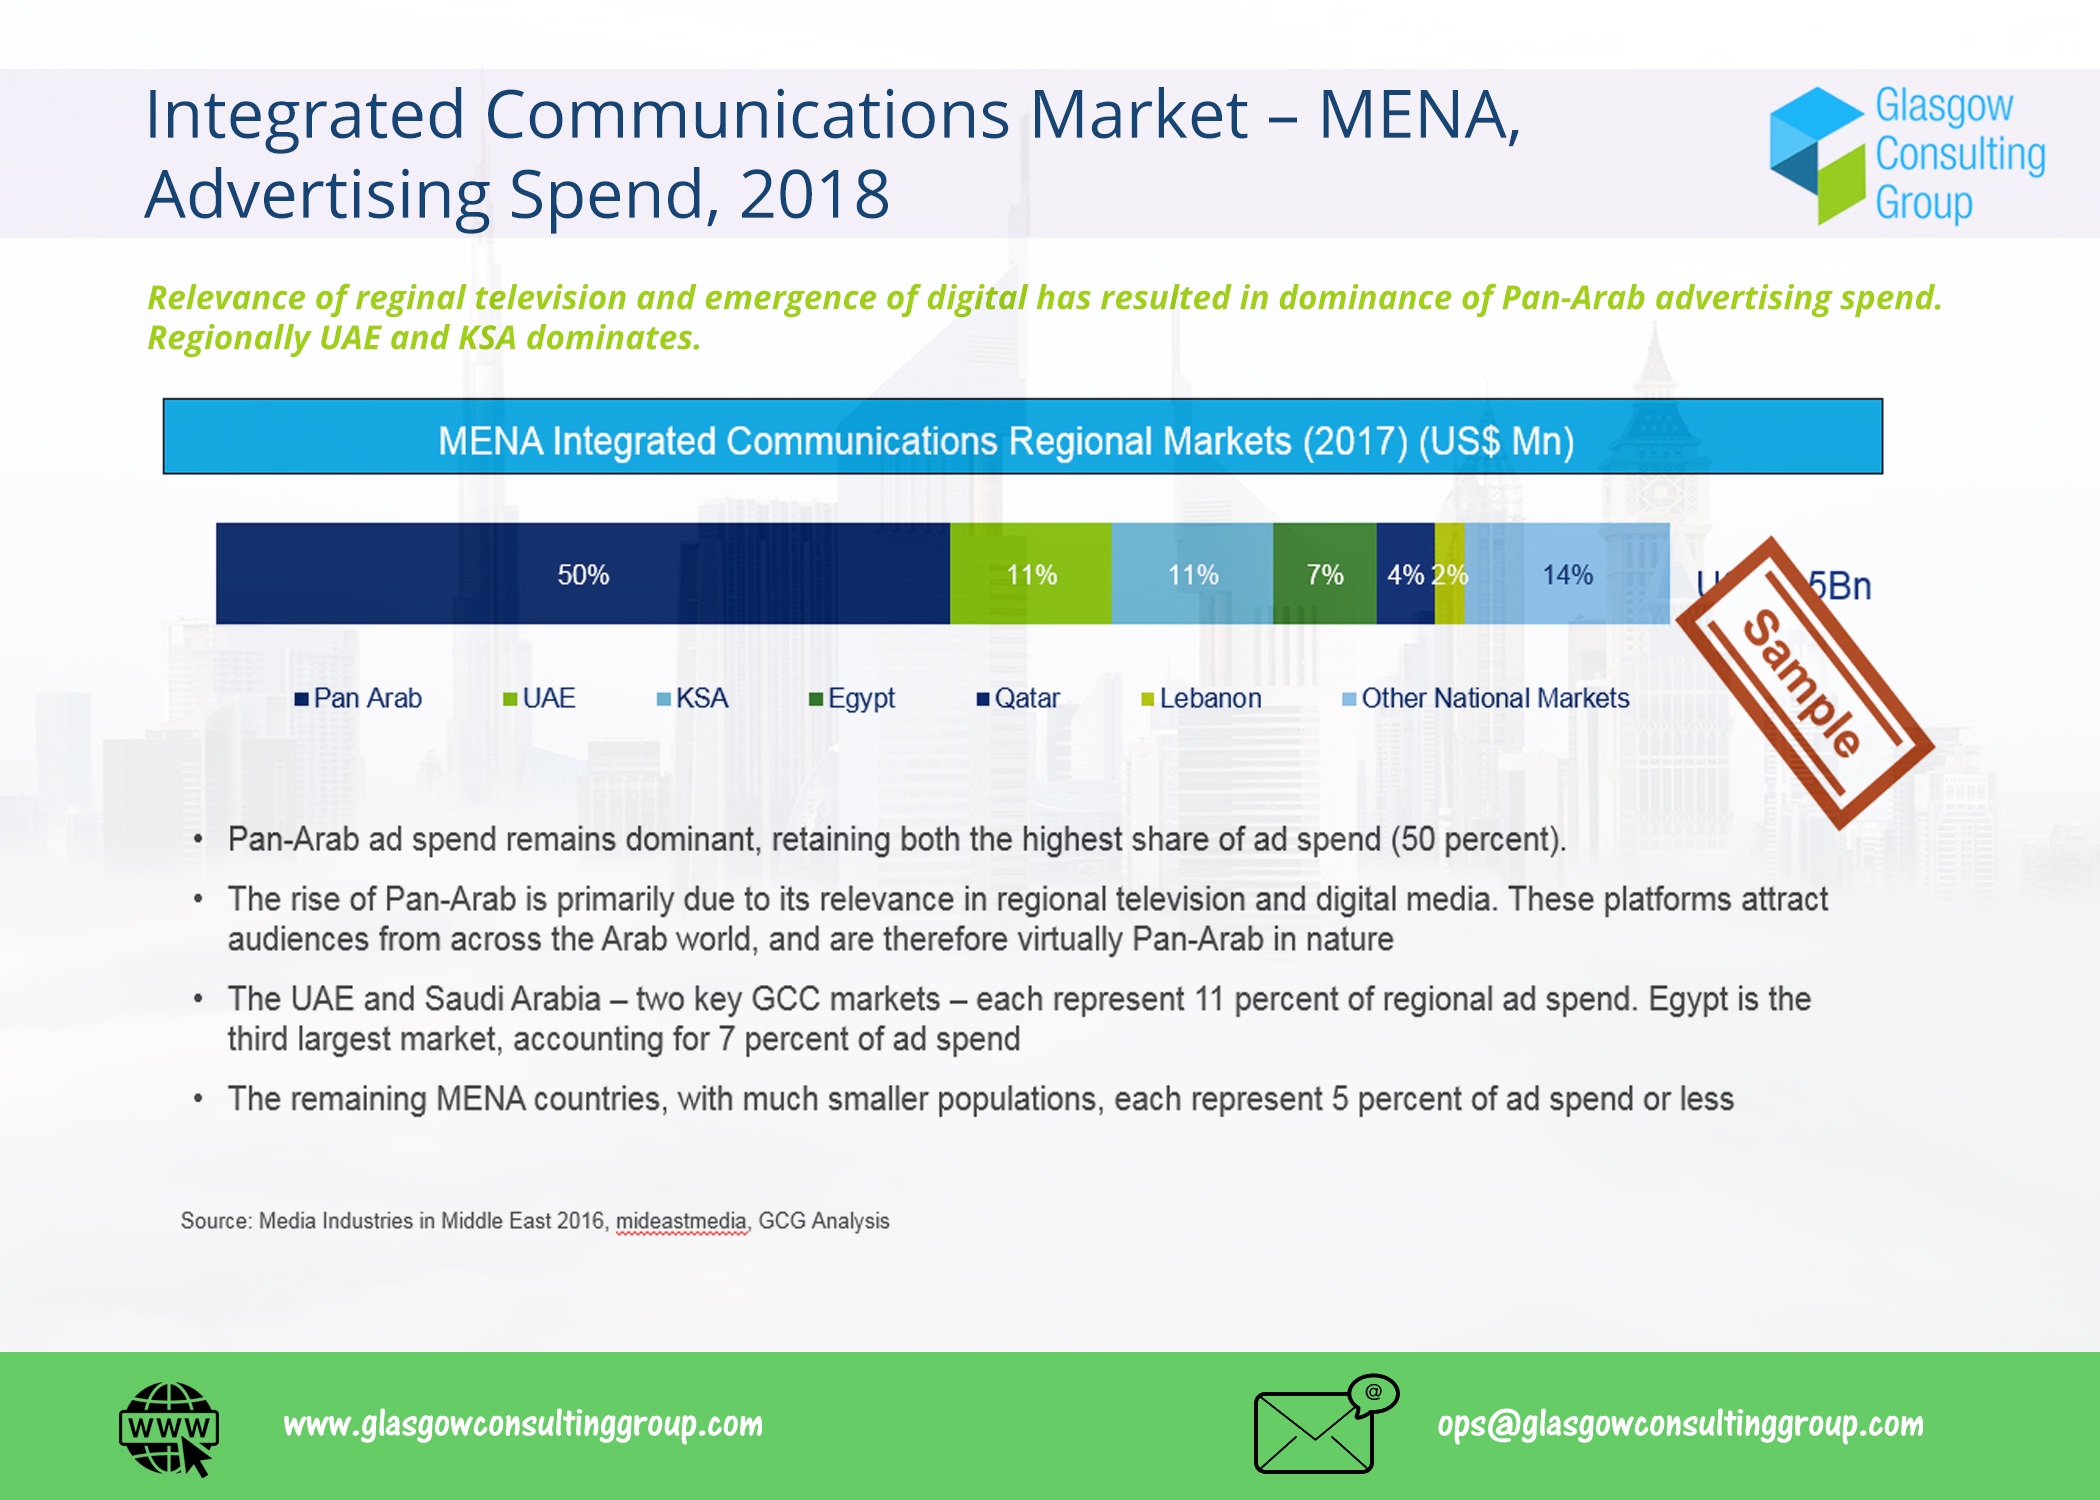 4 Integrated Communications Market MENA Advertising Spend 2018